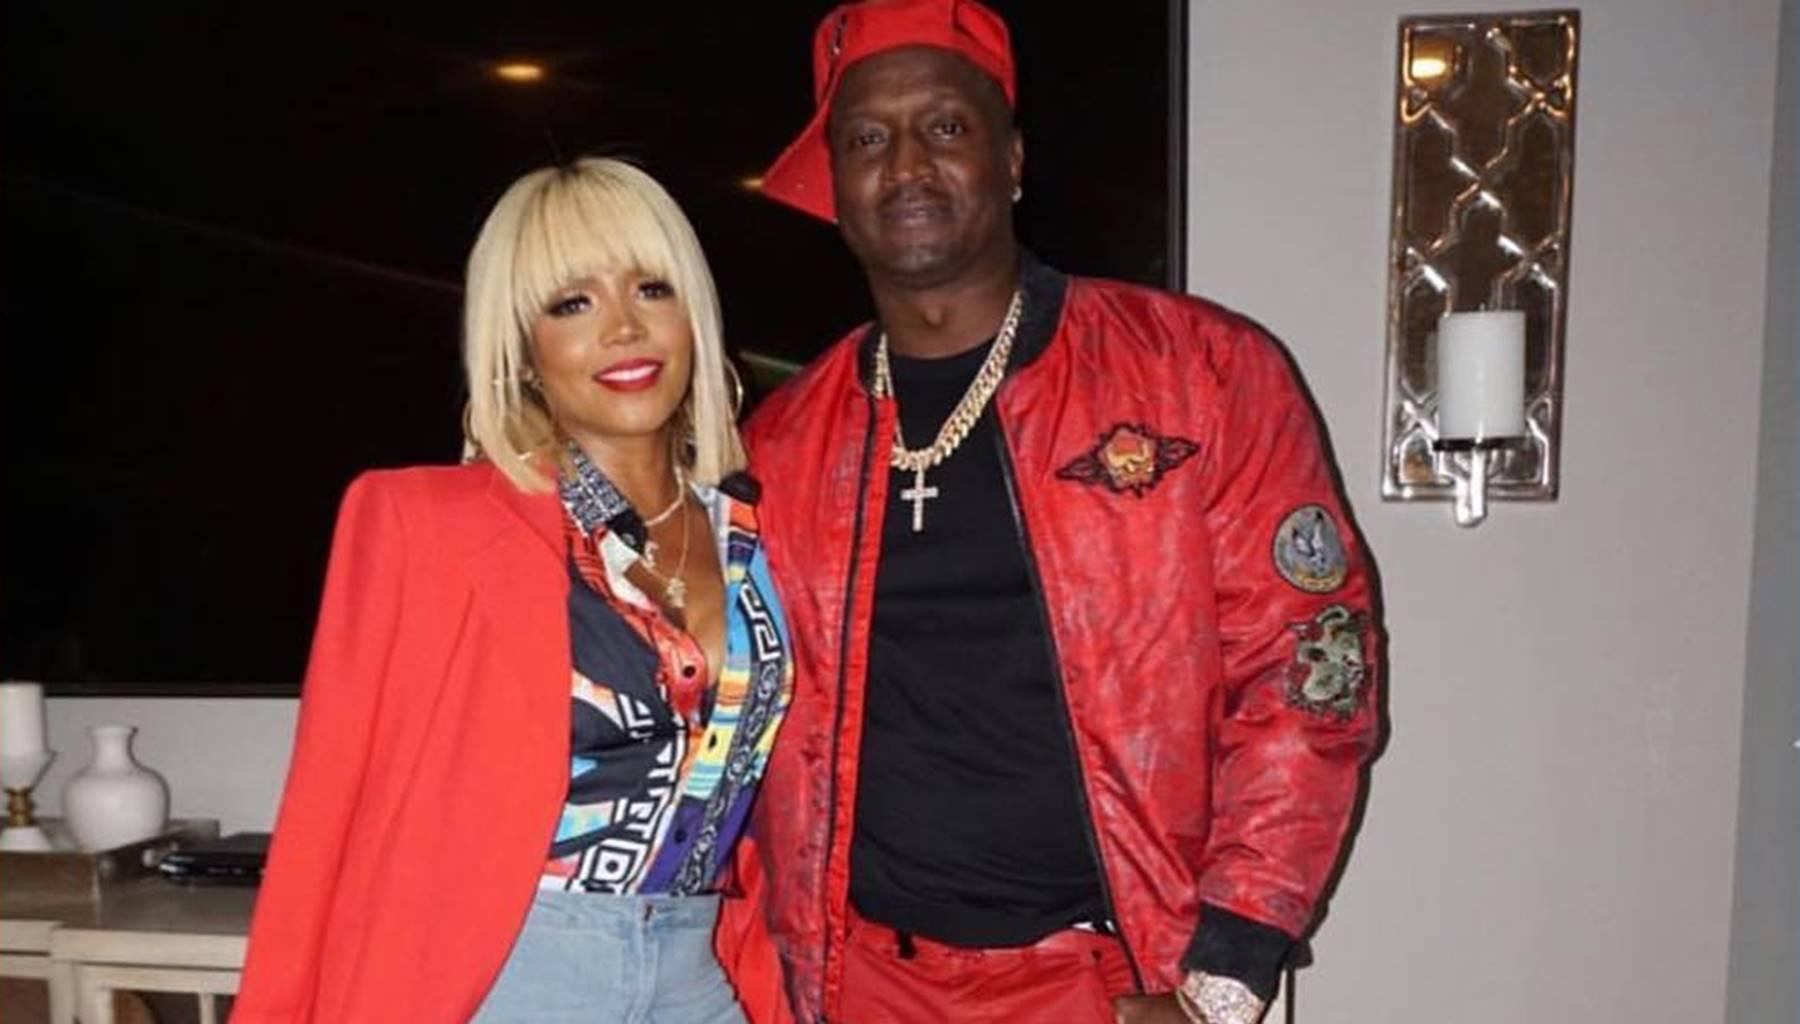 Rasheeda Frost Confirms Her Ride-Or-Die Chick Status As She Stands With Kirk After His Brother, Keith's Passing